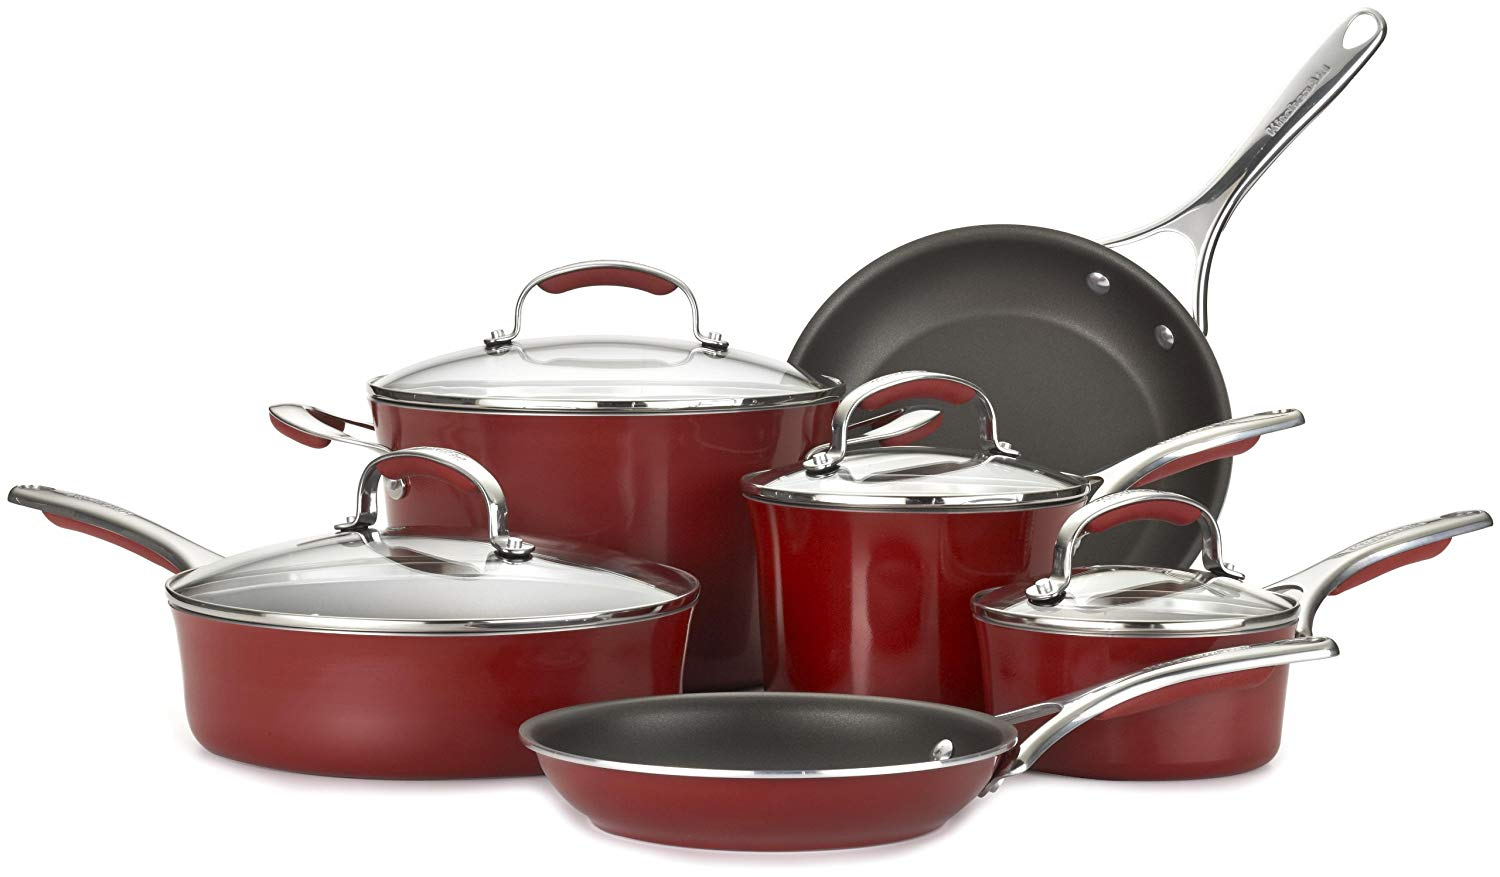 Kitchenaid Cookware Set Reviews